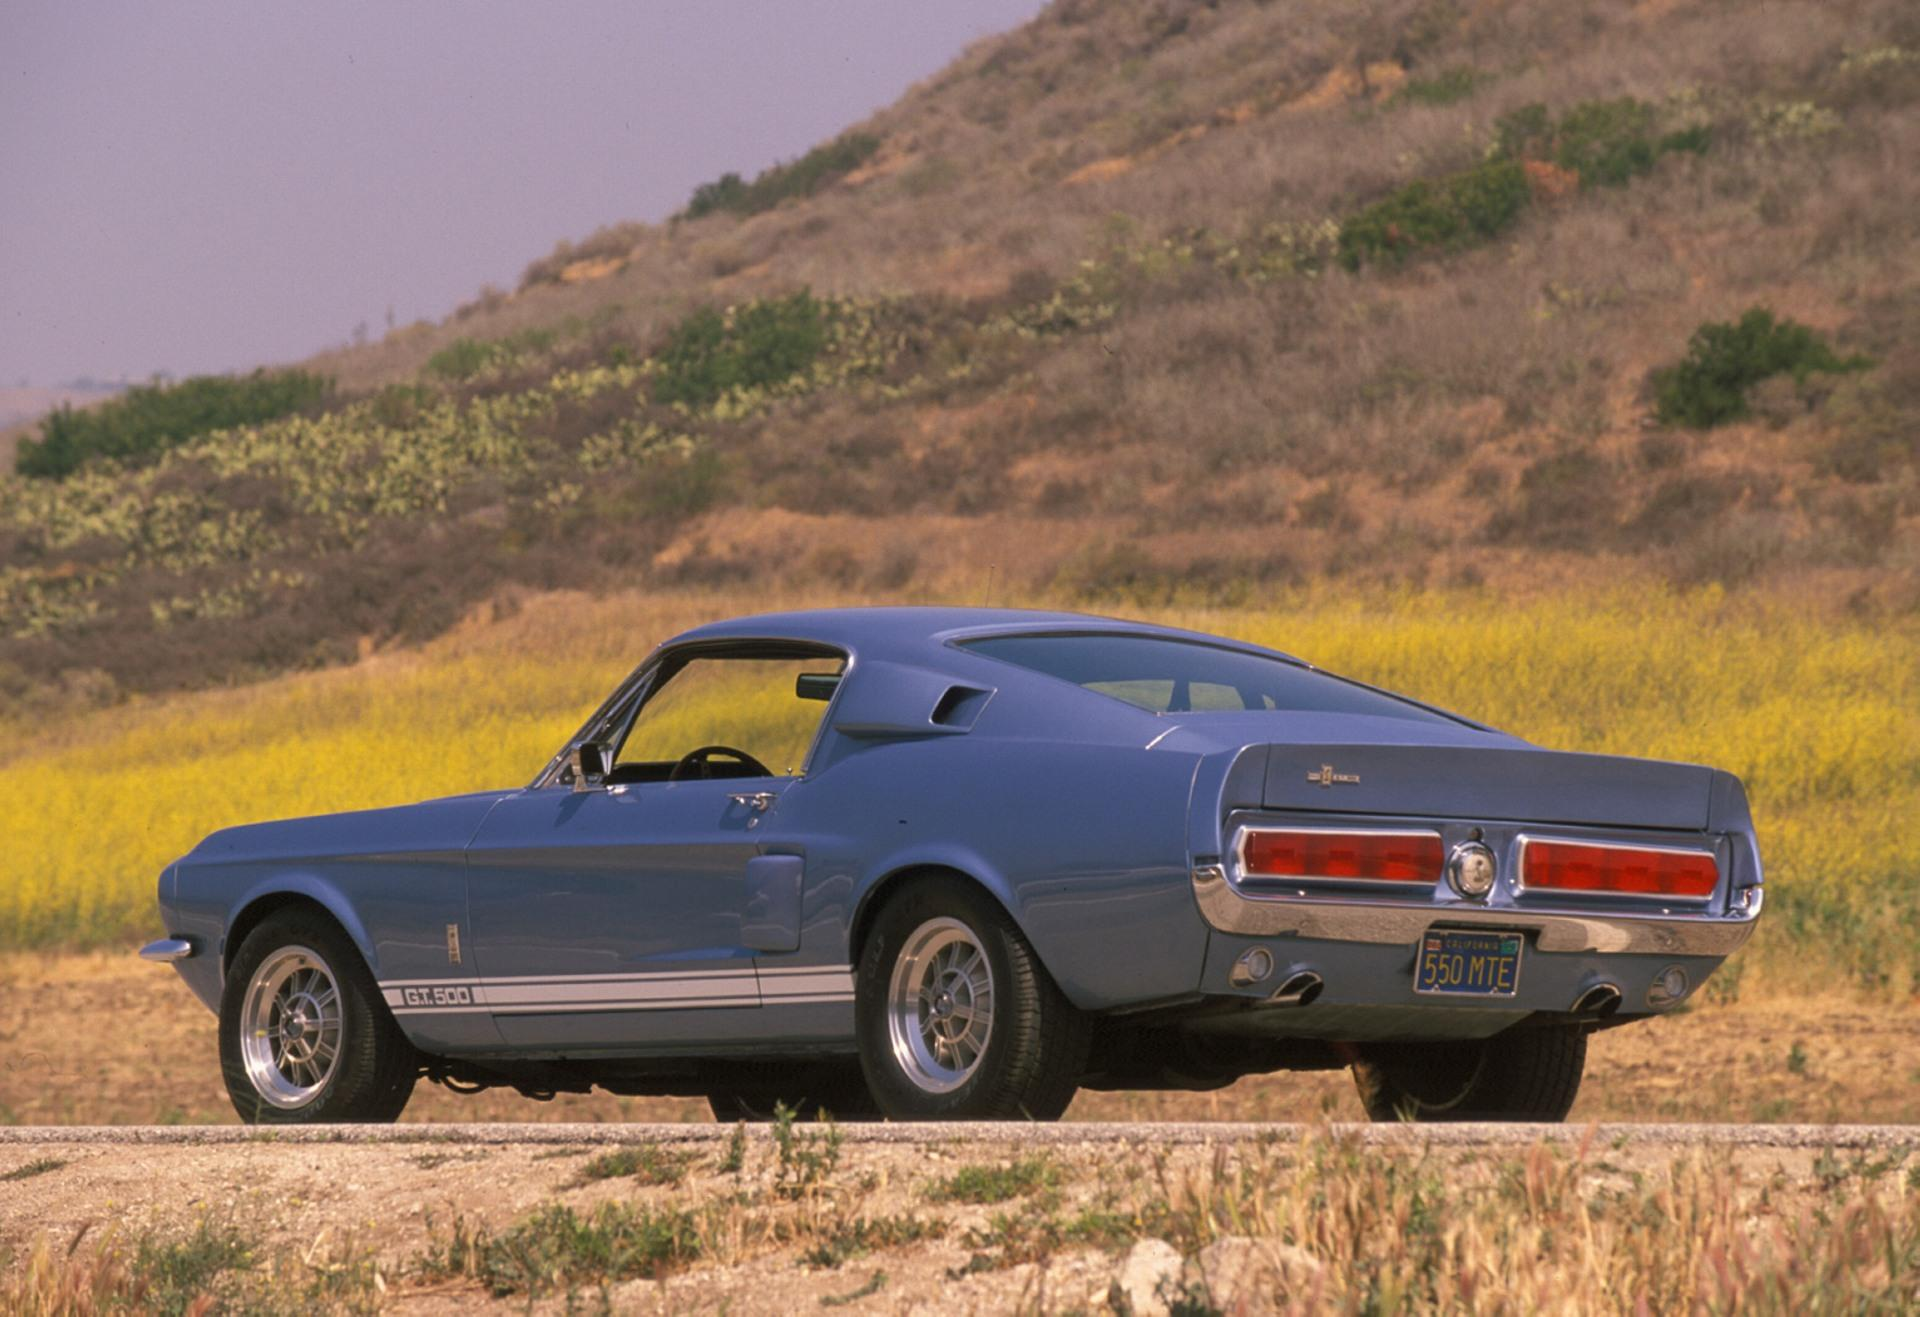 8 little known facts about muscle cars   AmcarGuide.com - American ...